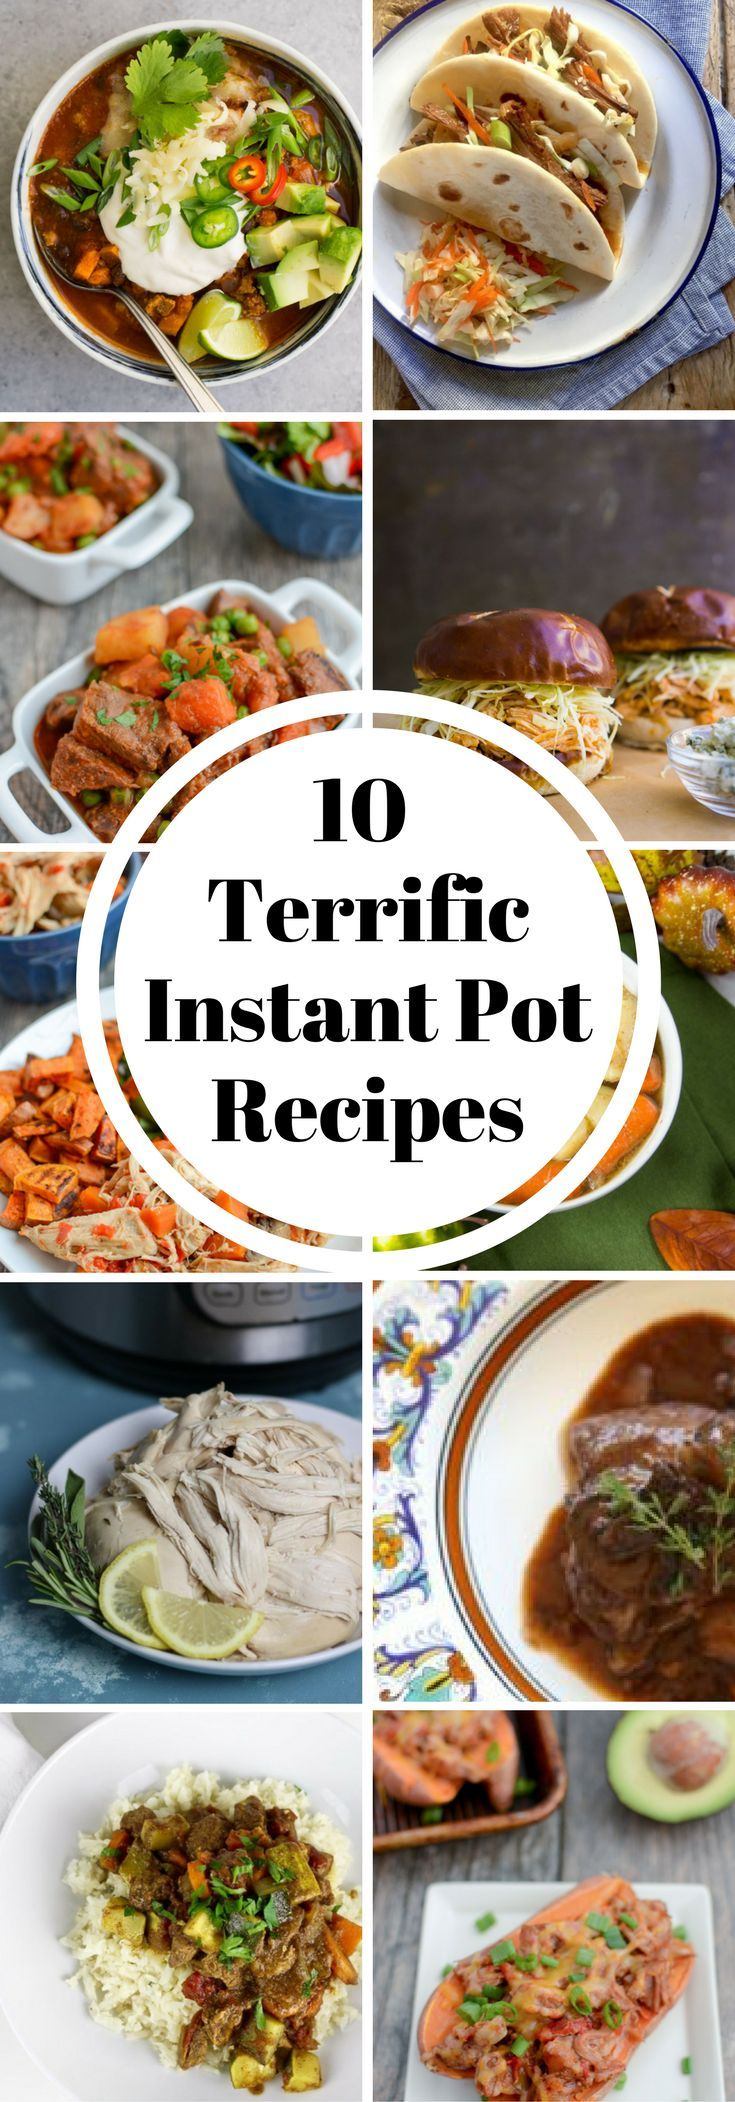 Are you new to the Instant Pot or having you been using a pressure cooker forever? Either way, these are 10 terrific recipes for pressured cooked meals.